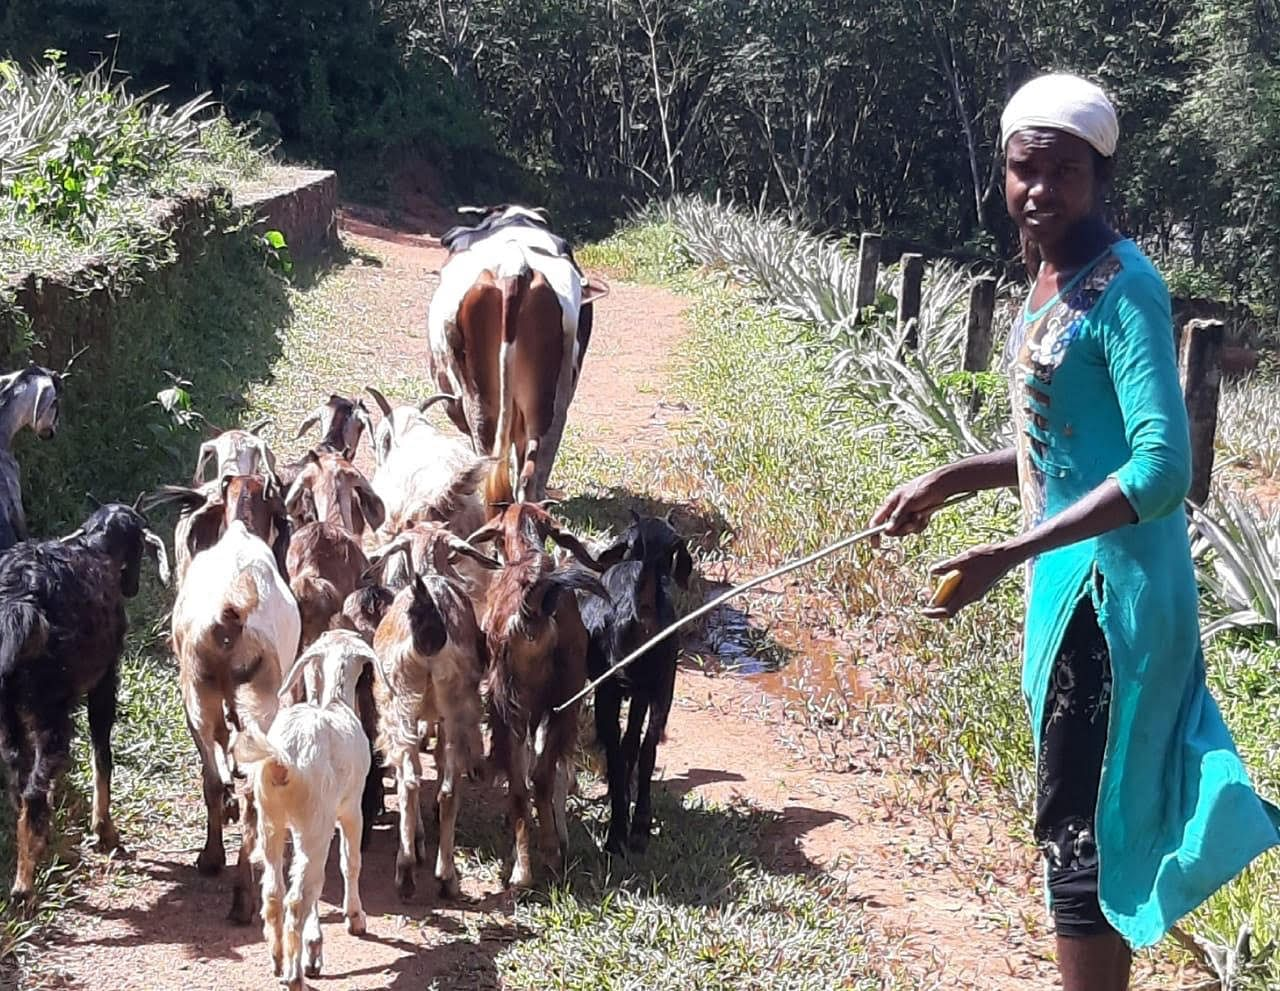 Sreya says these goats and cows are her only solace